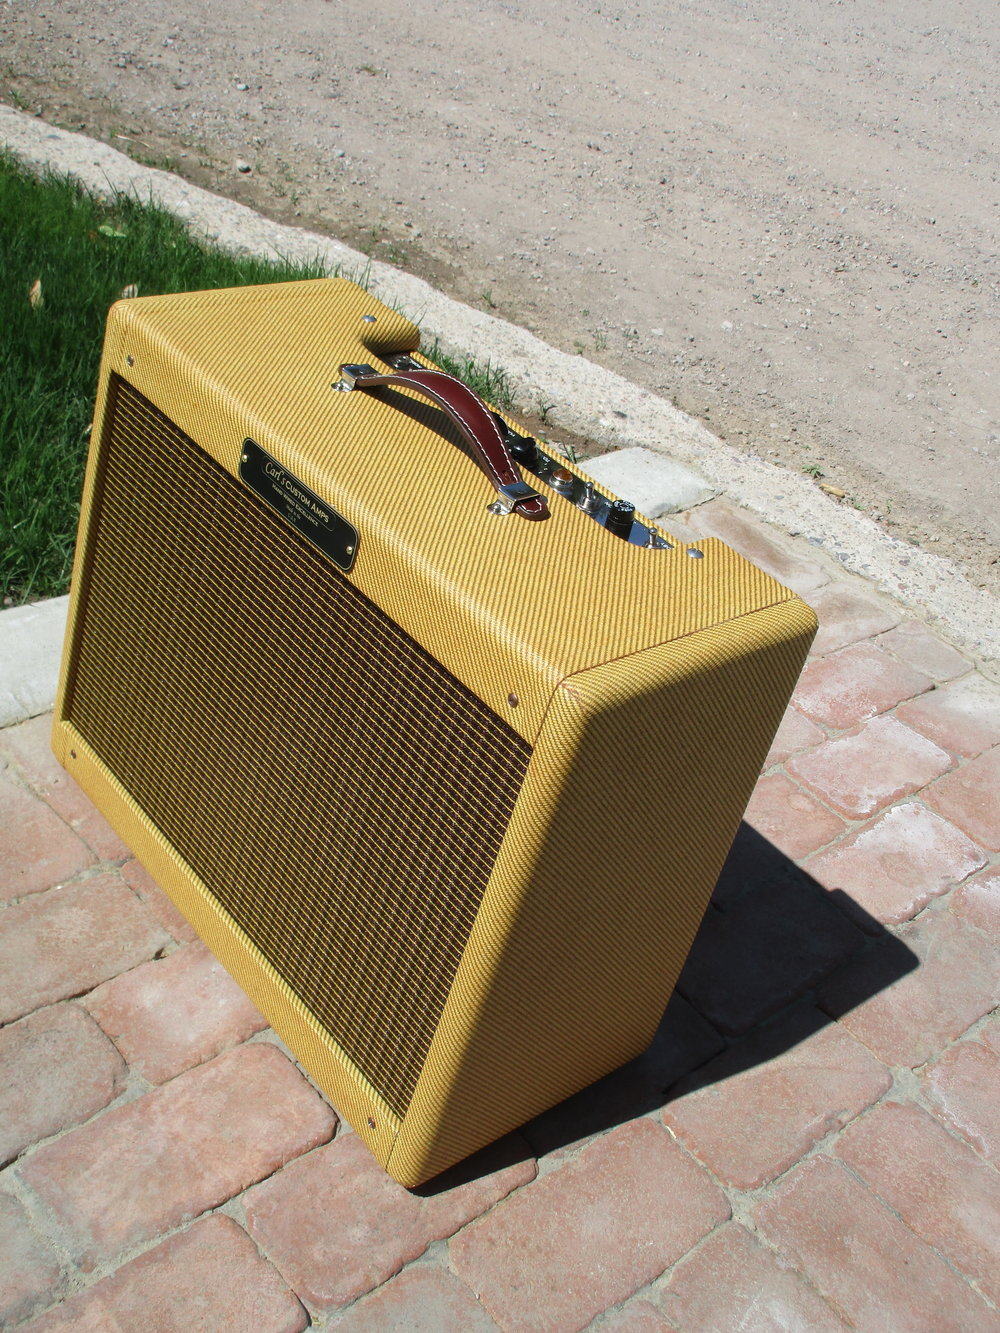 Carl's Custom Amps